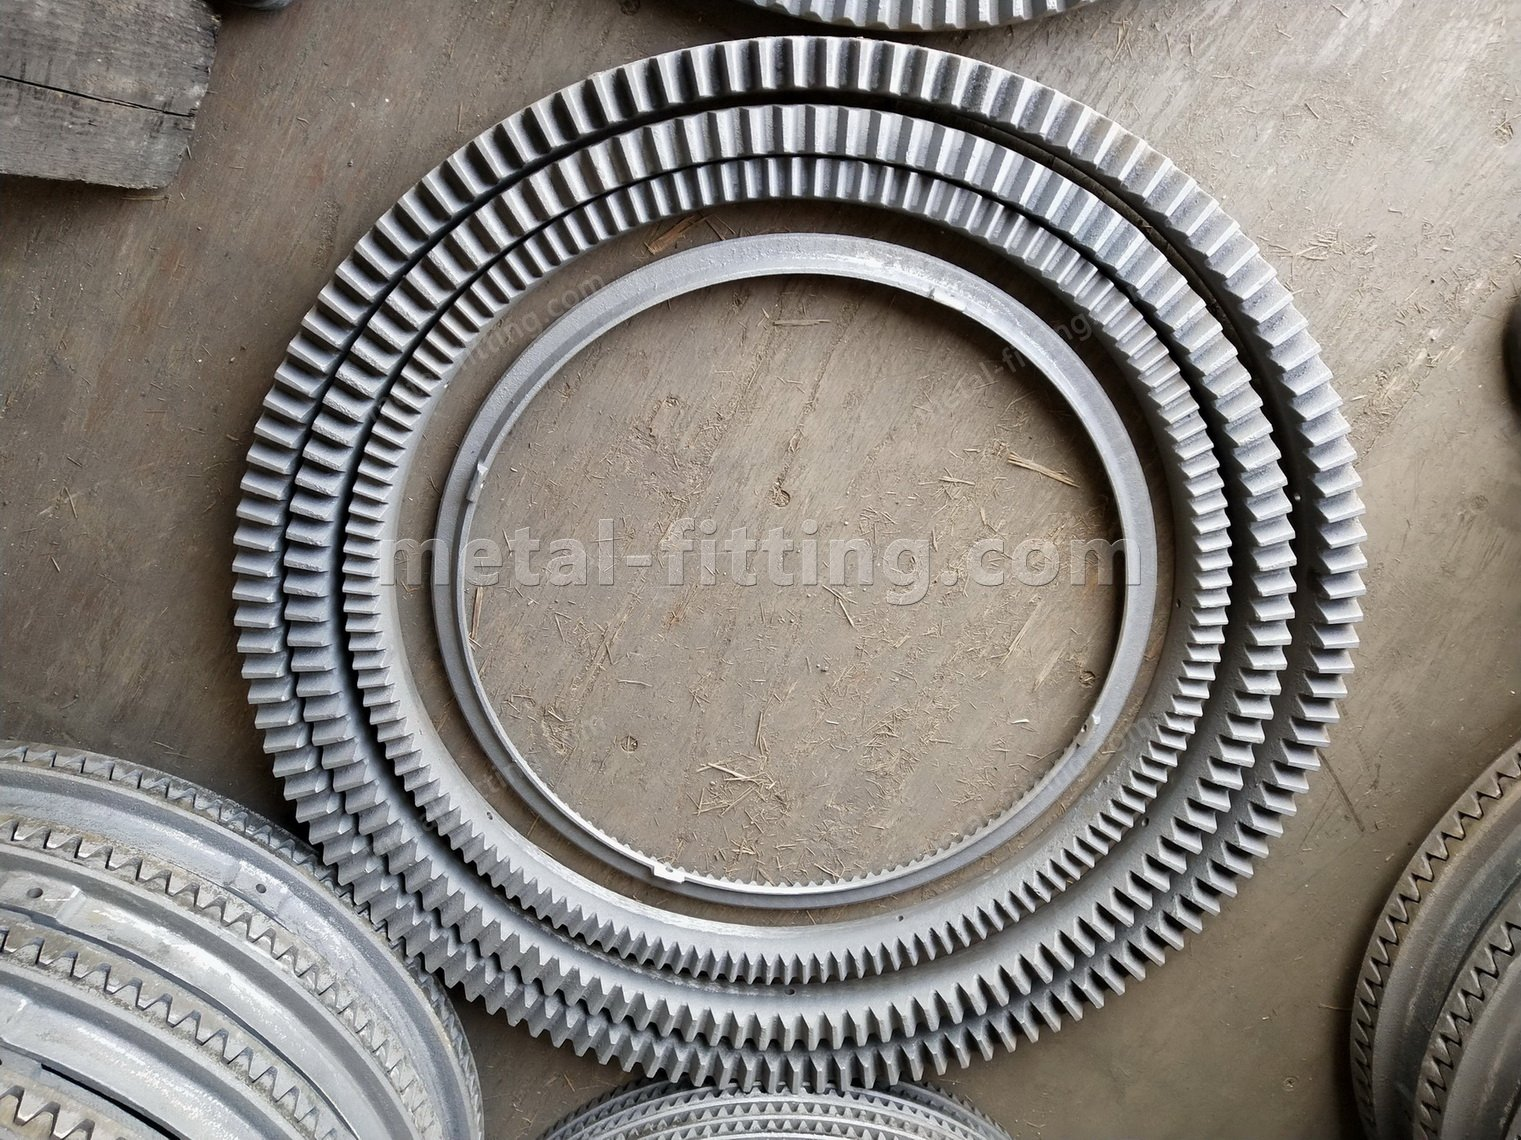 large iron crown gear ring for iron concrete Mixers-0c115c13afa2bee5e9554481cb13552